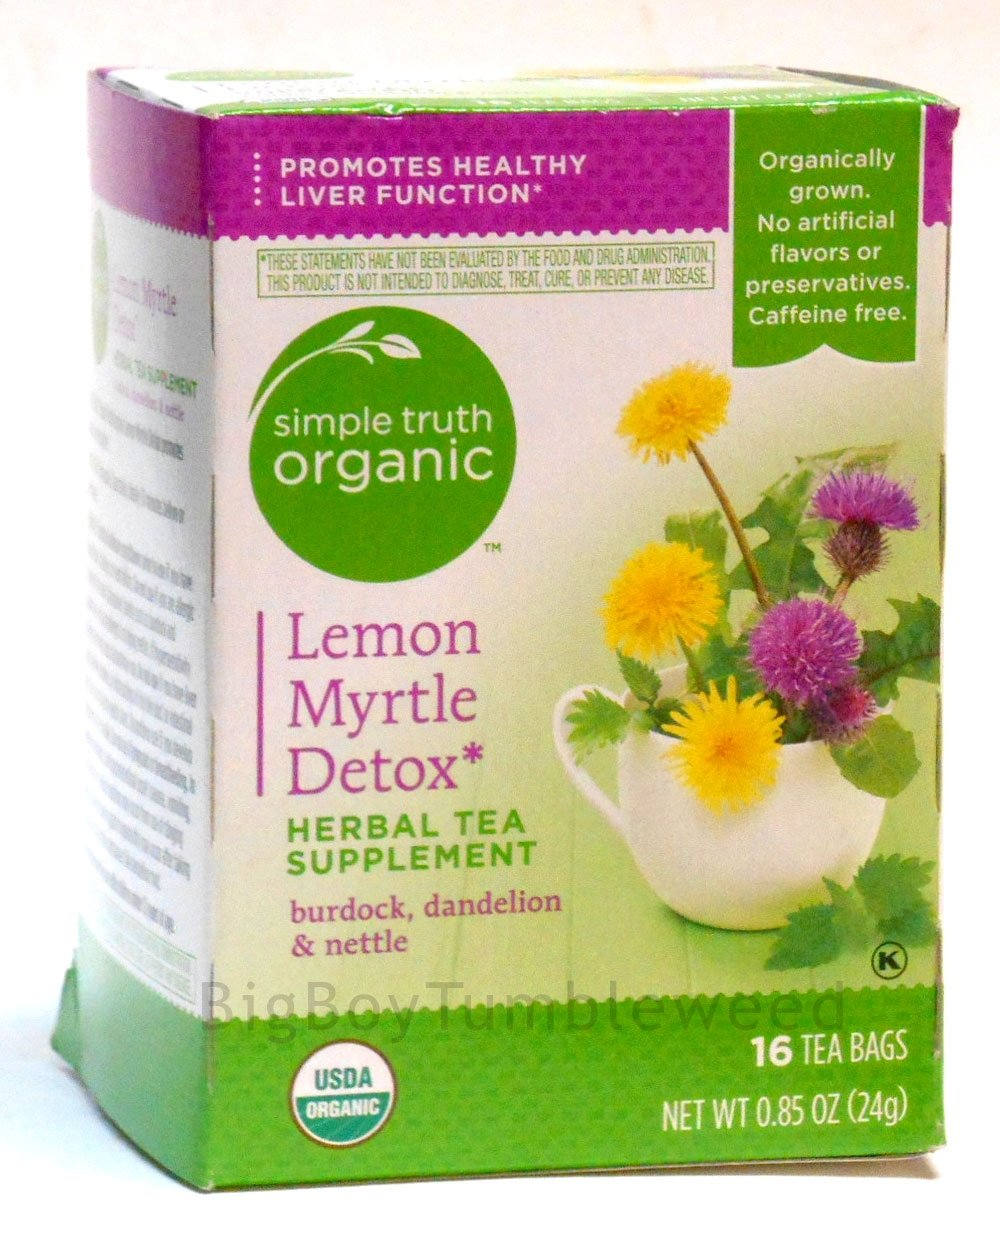 Simple Truth Tea Lemon Myrtle Detox herbal supplement TEA 16 bags burdock dandelion